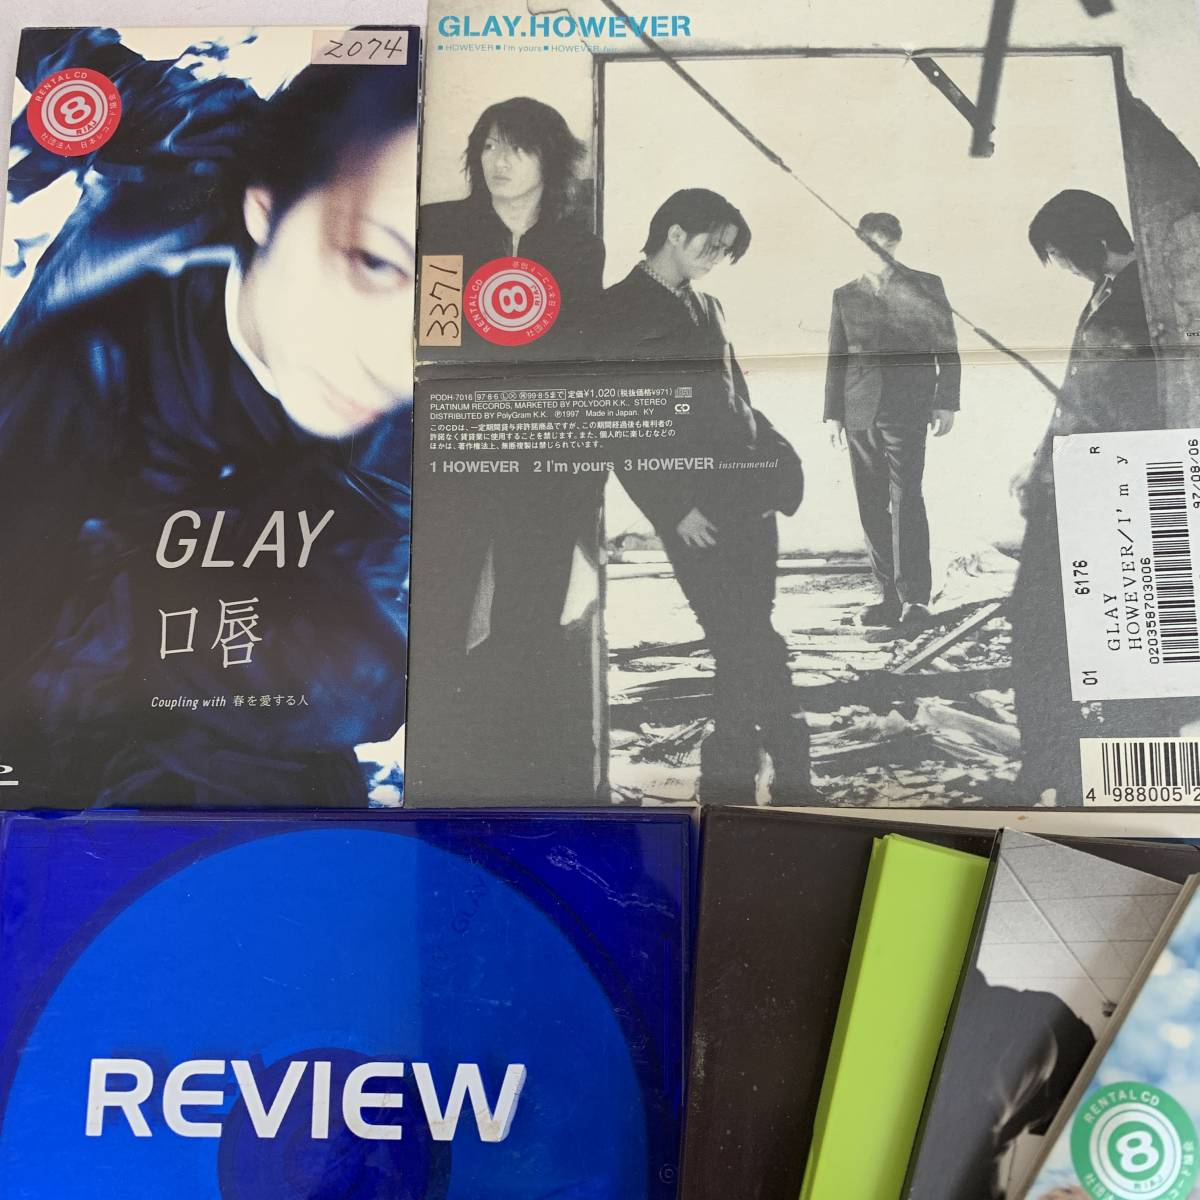 GLAY 口唇、REVIEW、Missing You、Soul Love、誘惑、a Boy、Winter,again、Be with You、However、9枚まとめて_画像2